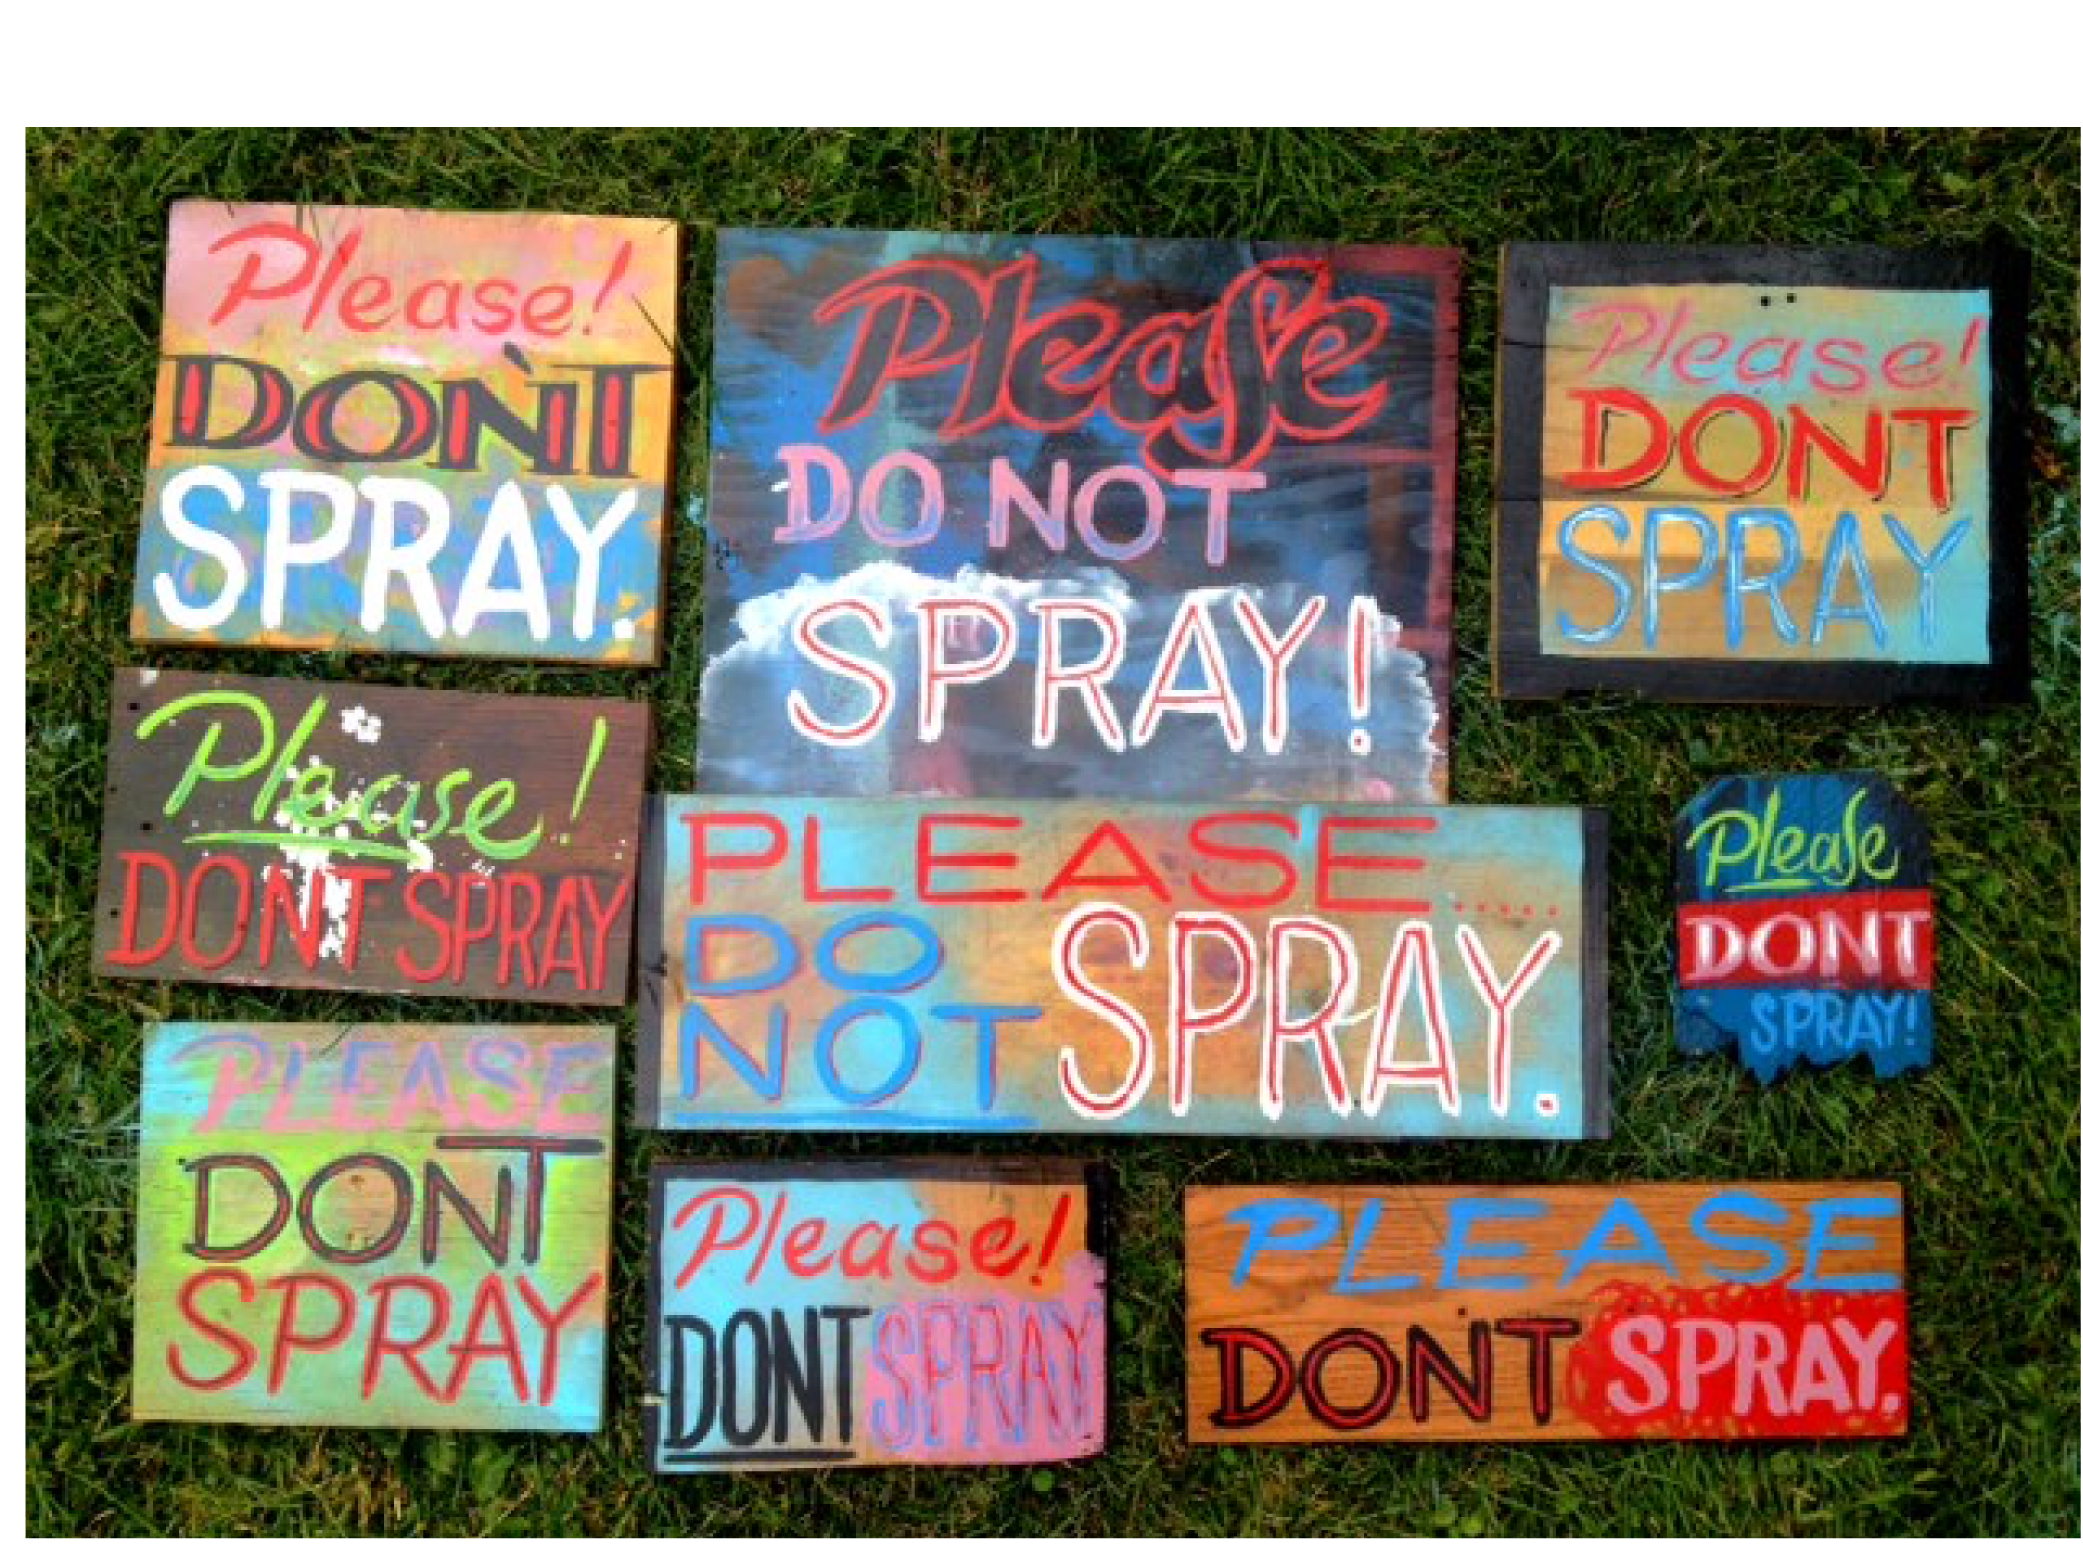 Please Don't Spray signs.